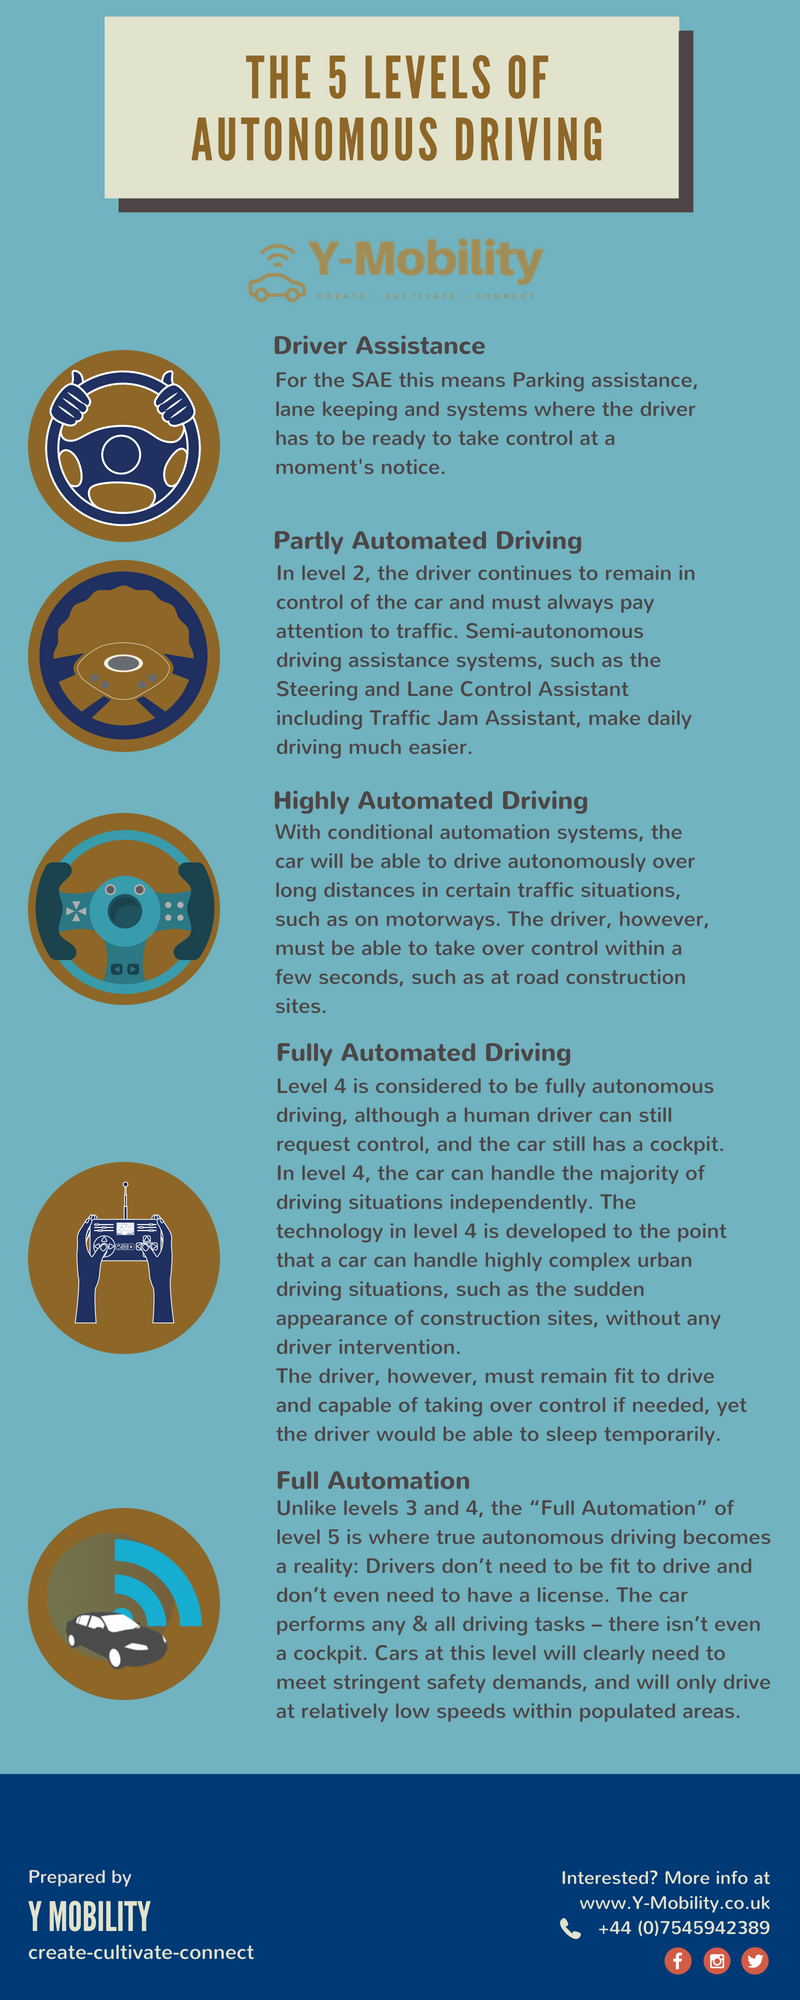 Could a DriverLess vehicle end up in..jail???